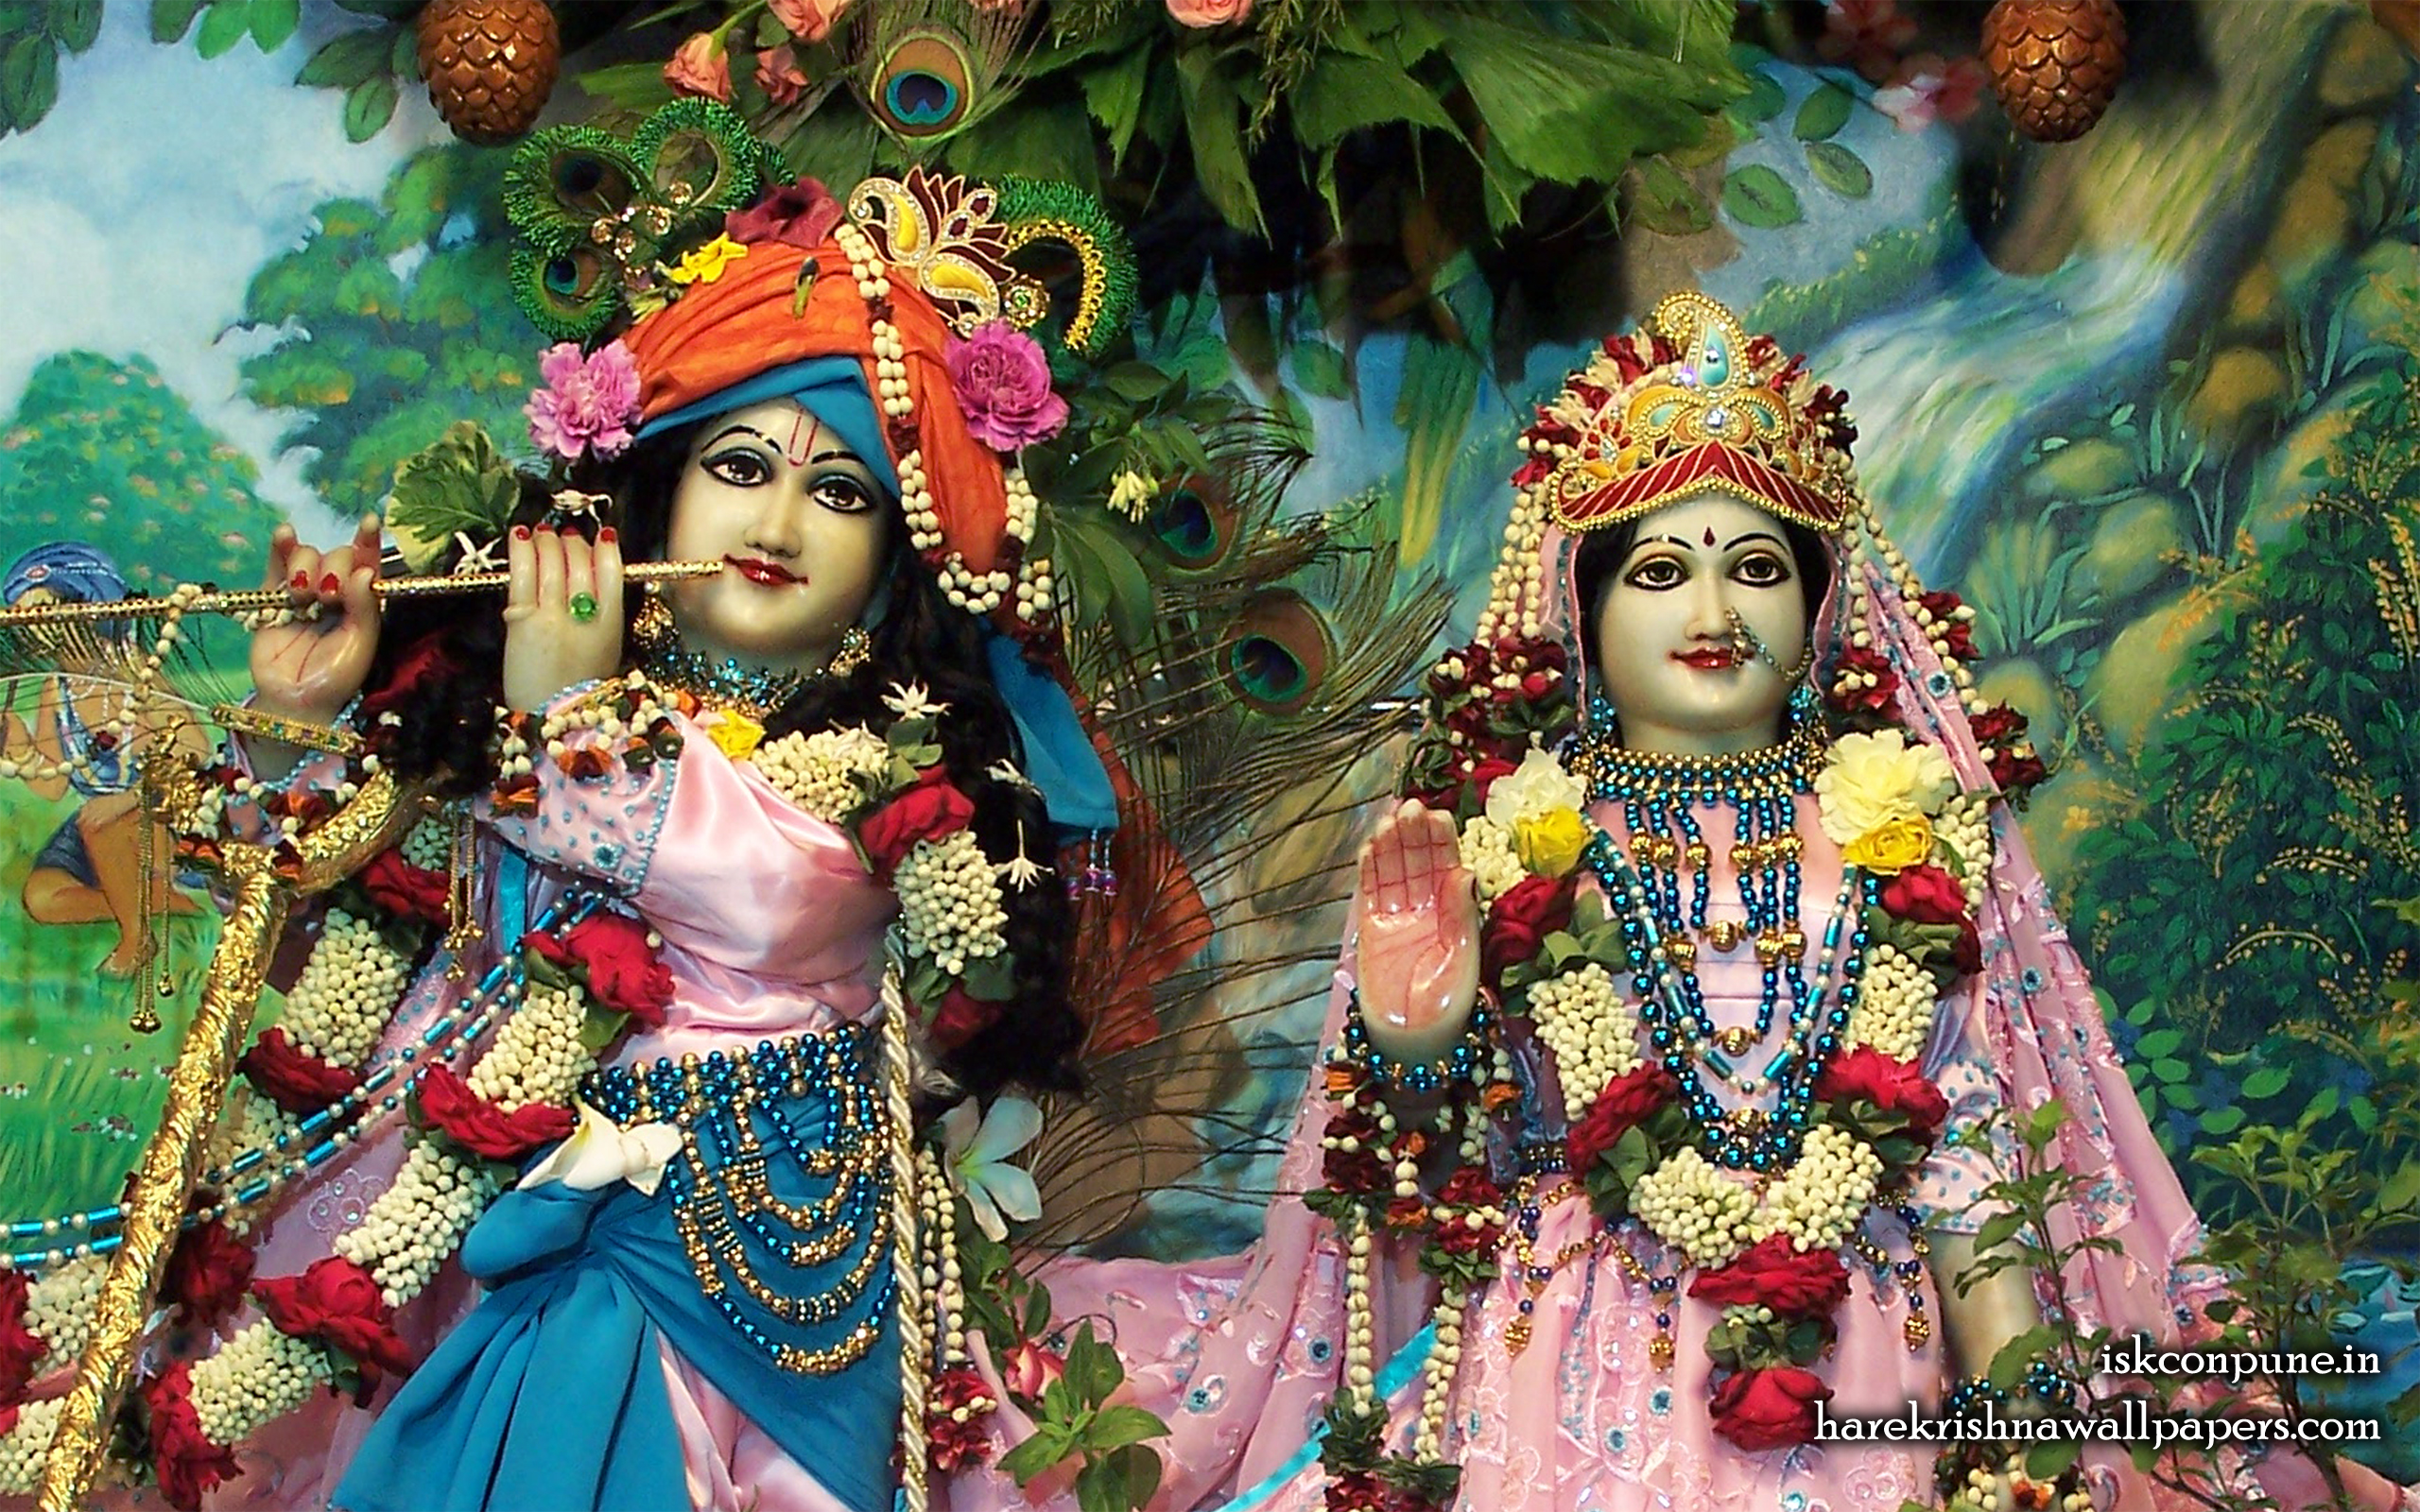 Sri Sri Radha Kunjabihari Close up Wallpaper (012) Size 2560x1600 Download